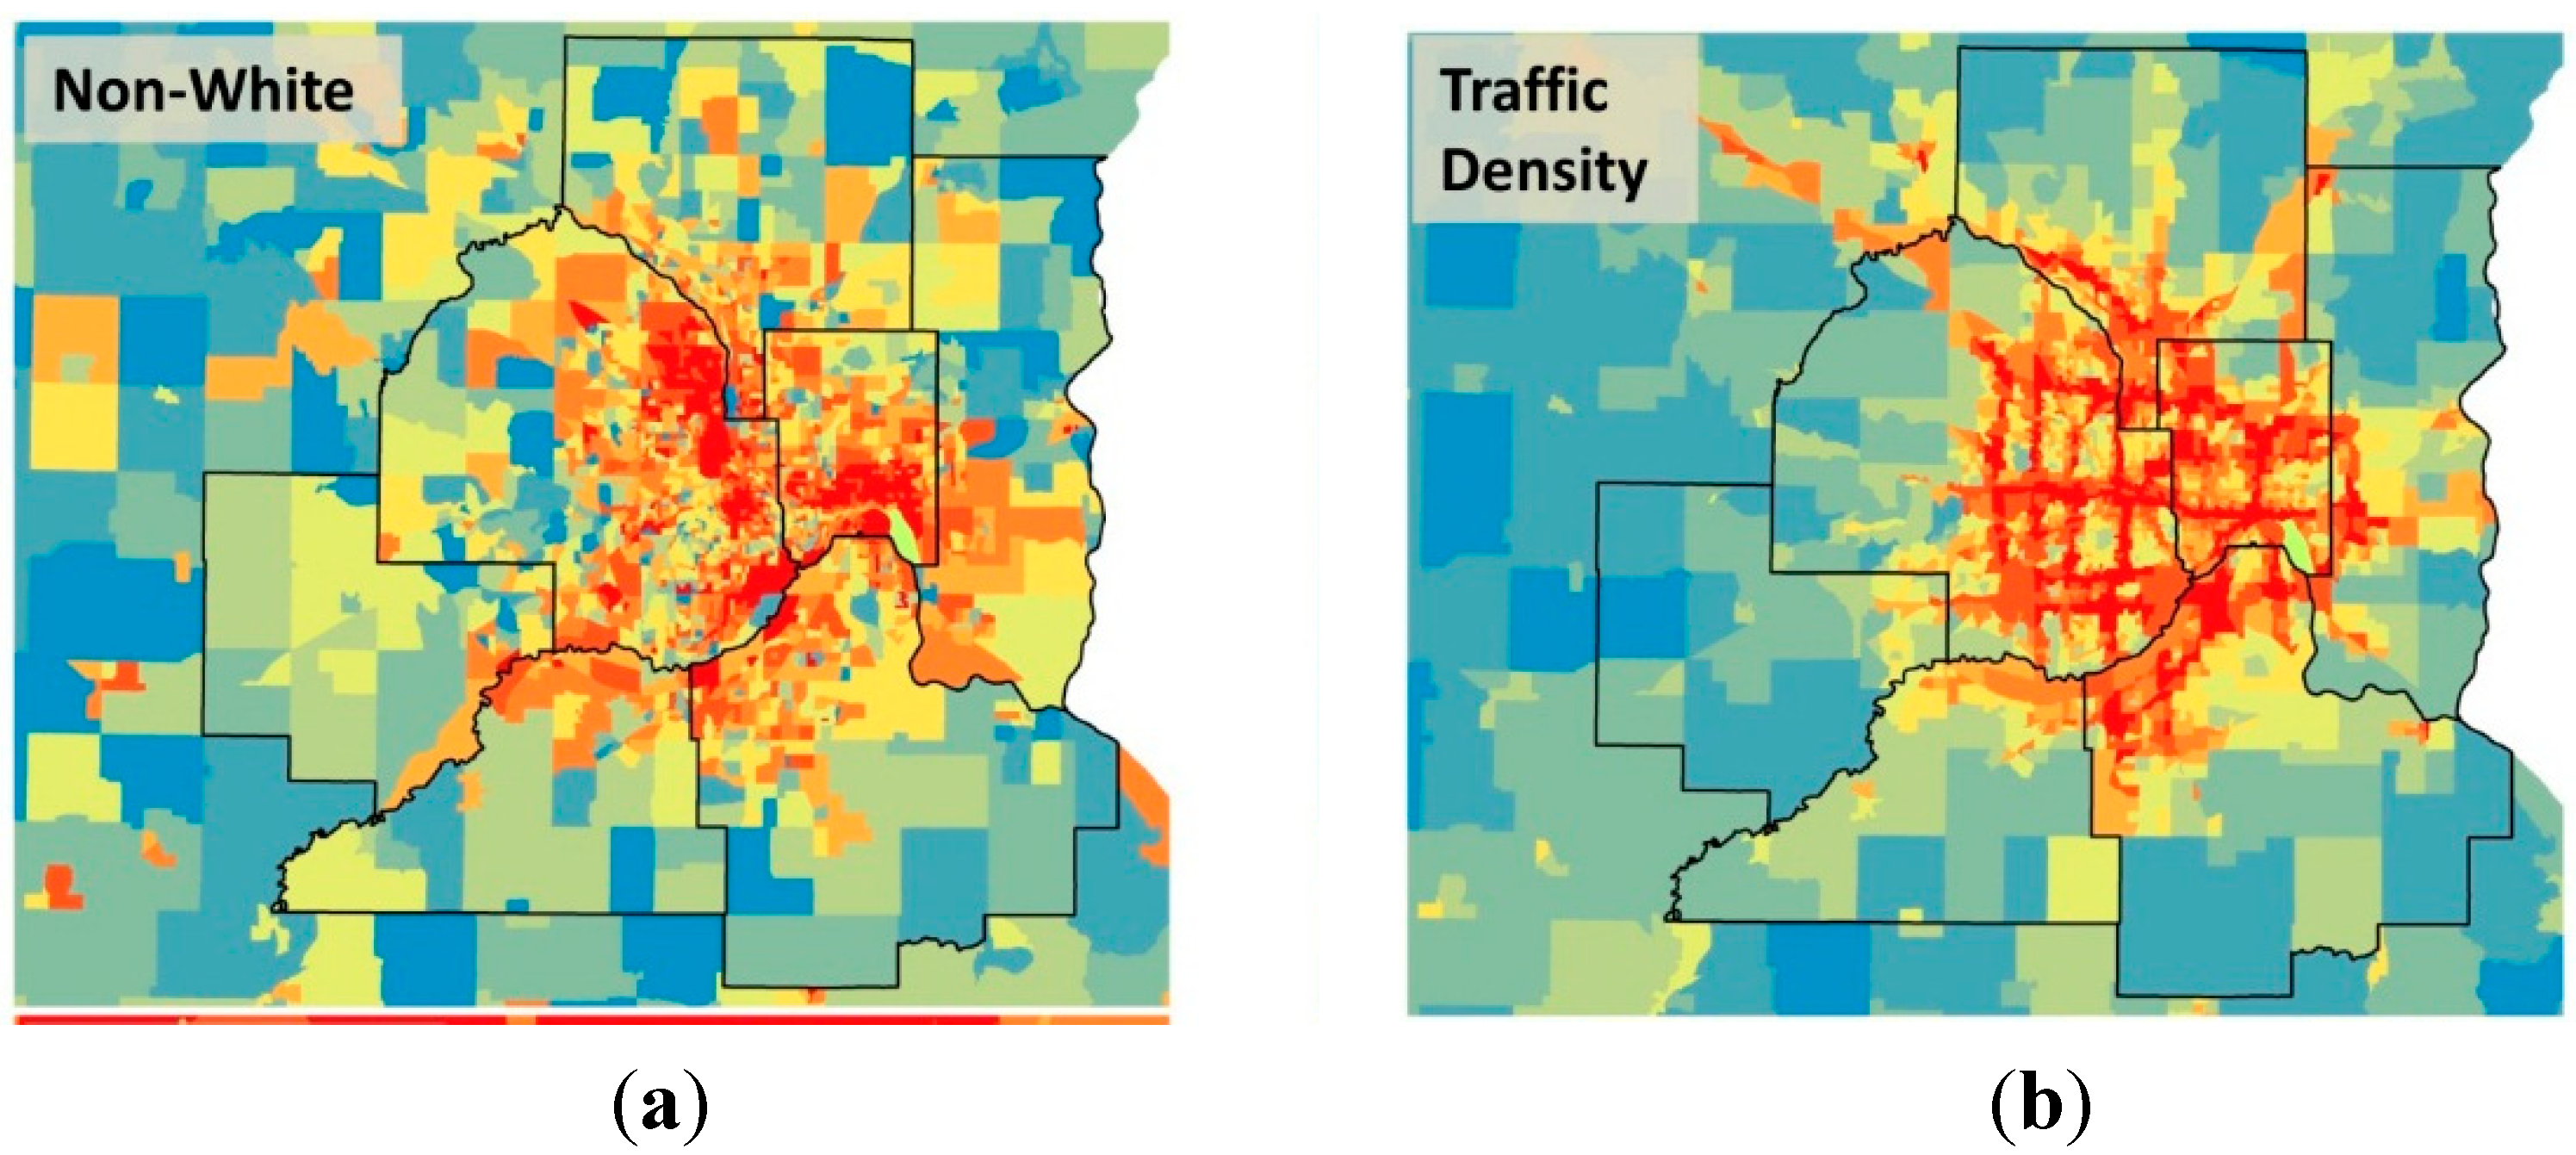 IJERPH | Free Full-Text | Traffic, Air Pollution, Minority and Socio on city traffic map, new orleans traffic map, manila traffic map, washington traffic map, dallas fort worth traffic map, hampton roads traffic map, minneapolis real-time traffic, hawaii traffic map, massachusetts traffic map, minneapolis roads, minneapolis events, las vegas traffic map, minneapolis library, minneapolis weather, texas traffic map, galveston traffic map, san francisco bay area traffic map, buffalo traffic map, orlando traffic map, mississippi traffic map,